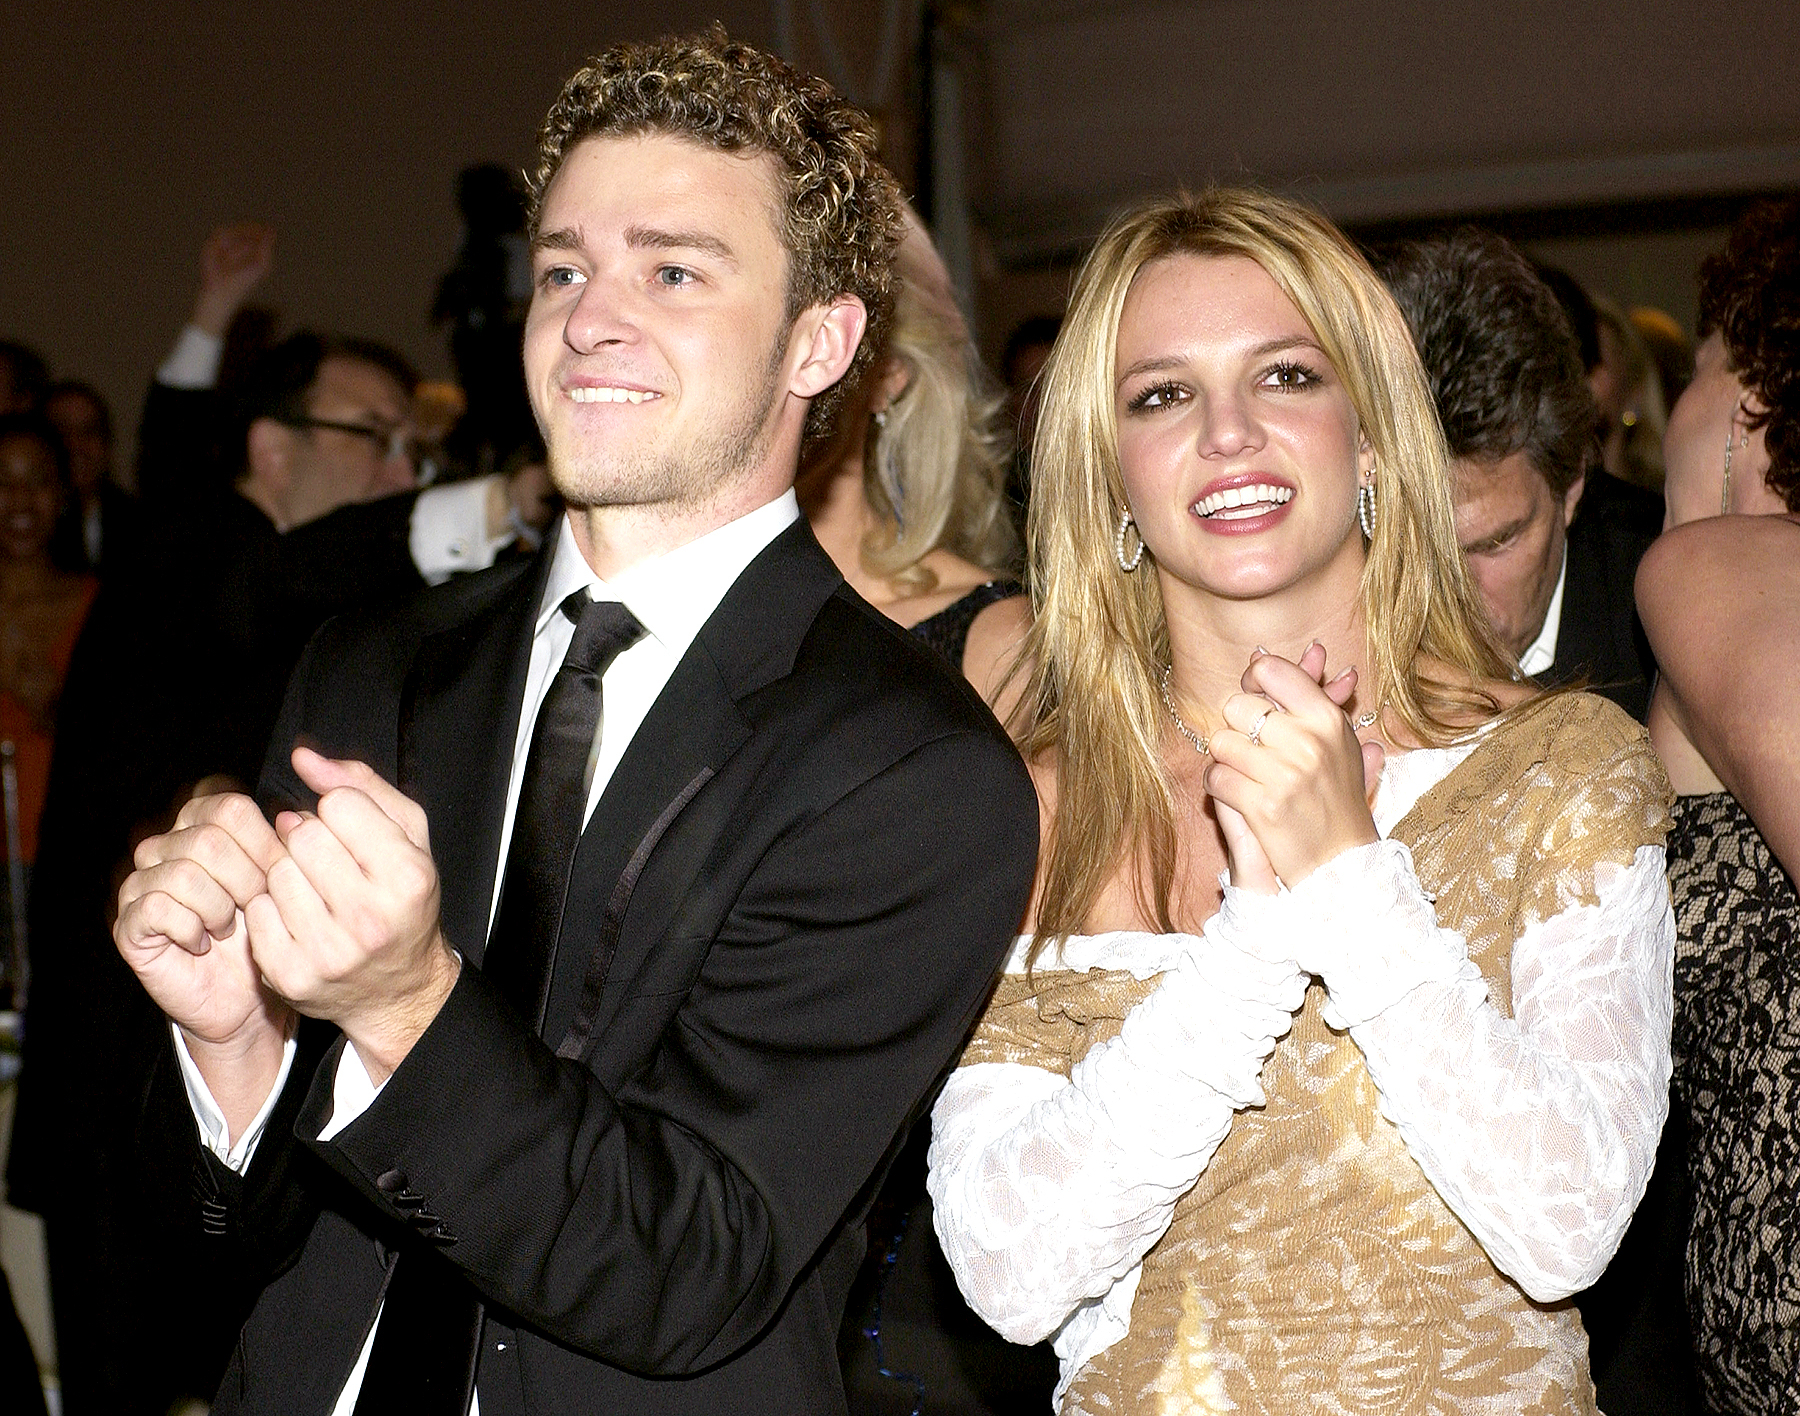 Justin Timberlake and Britney Spears at the Beverly Hills Hotel in Beverly Hills in 2002.